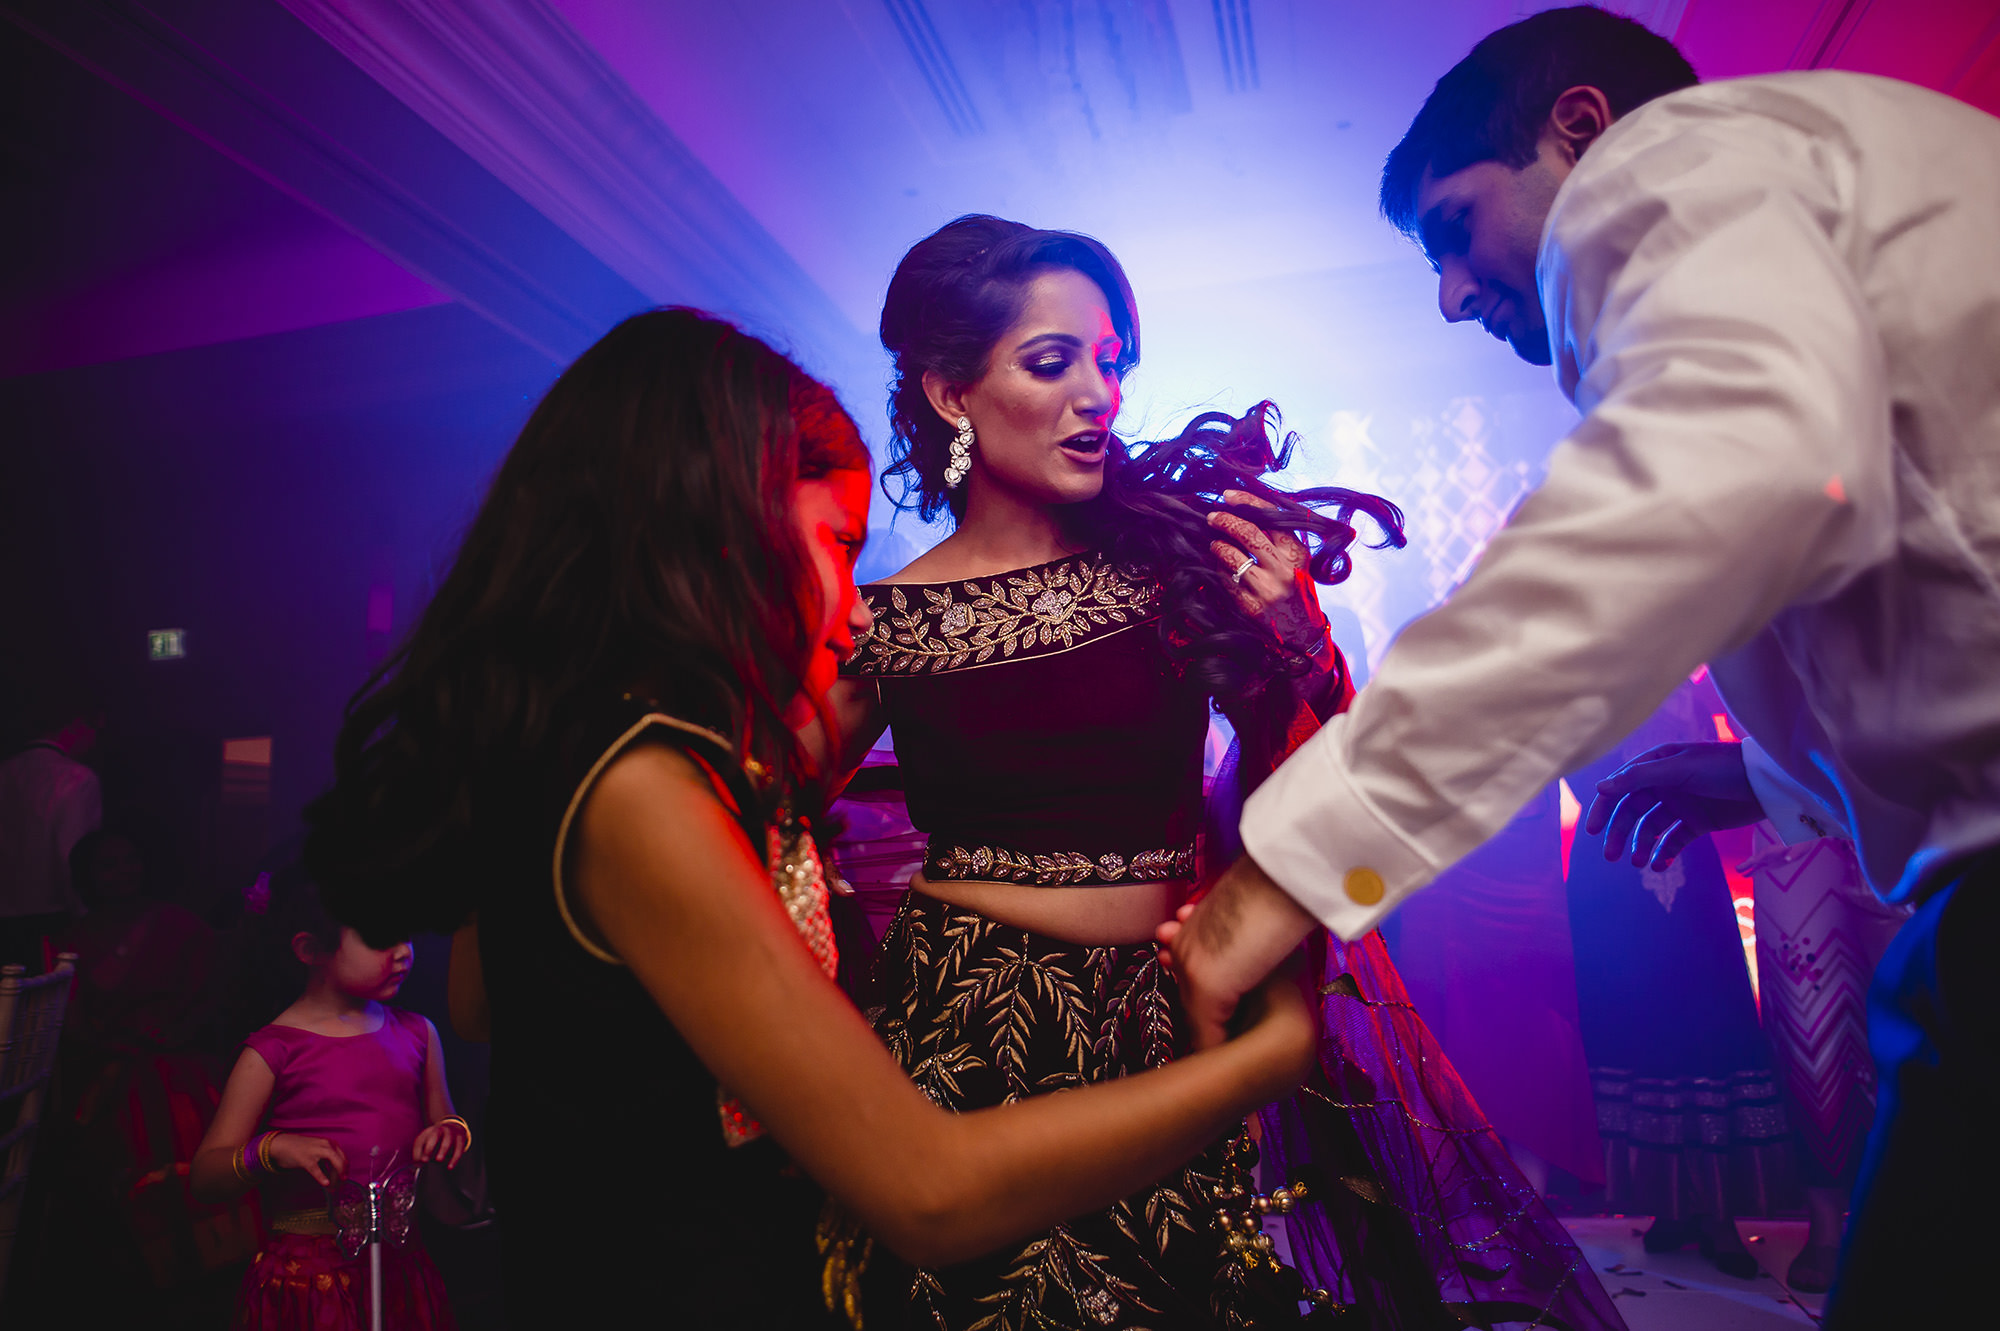 bride dancing during the wedding reception